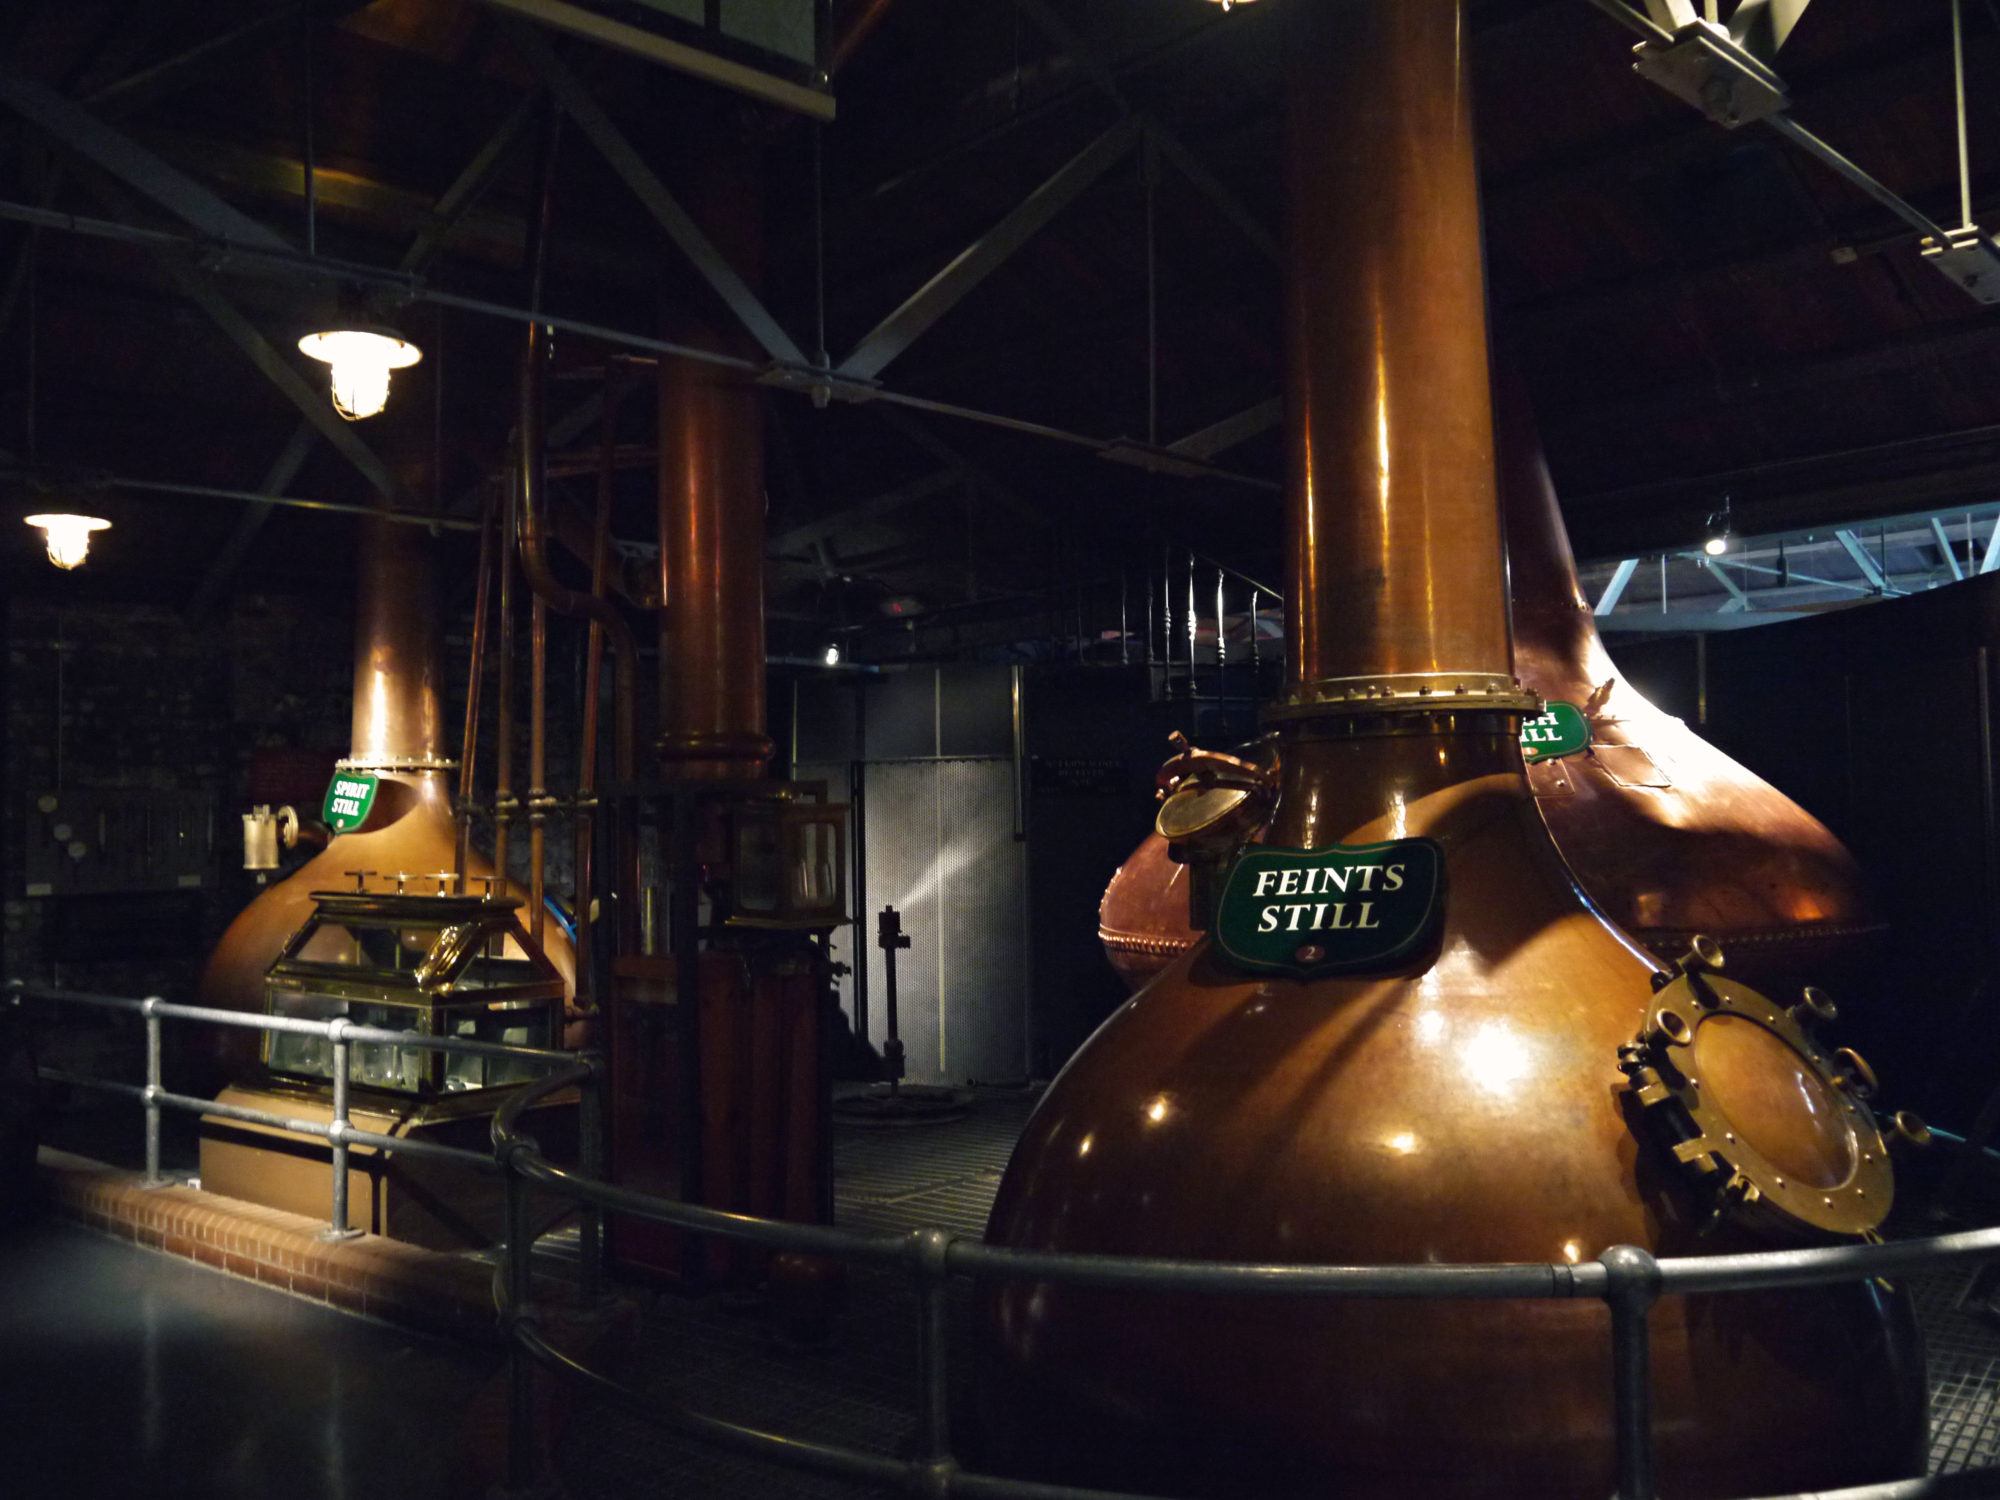 Feints Still, Jameson Whiskey Distillery in Dublin, Ireland